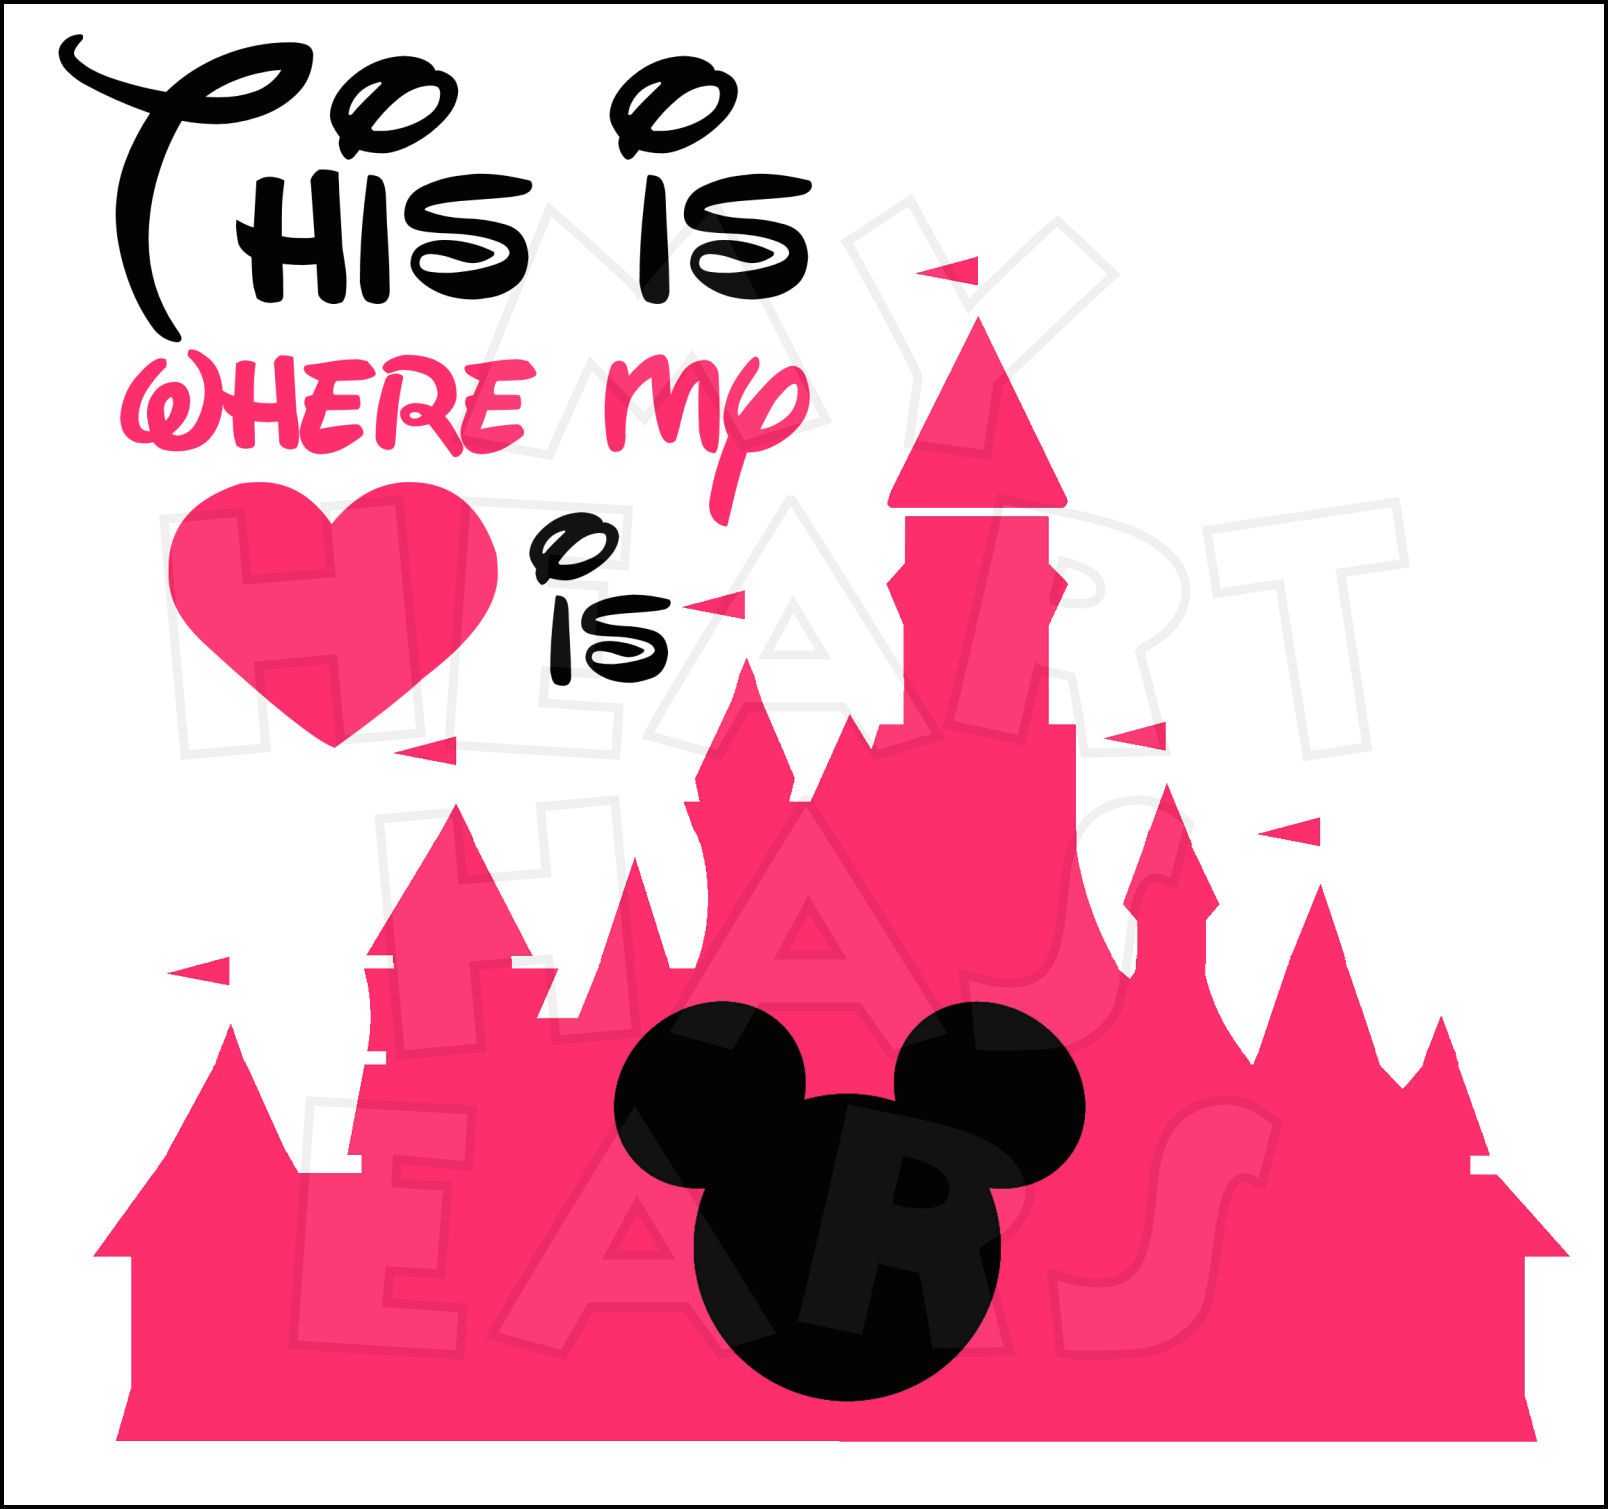 Disney building clipart graphic library stock Disney Castle Clipart craft projects, Building Clipart - Clipartoons graphic library stock